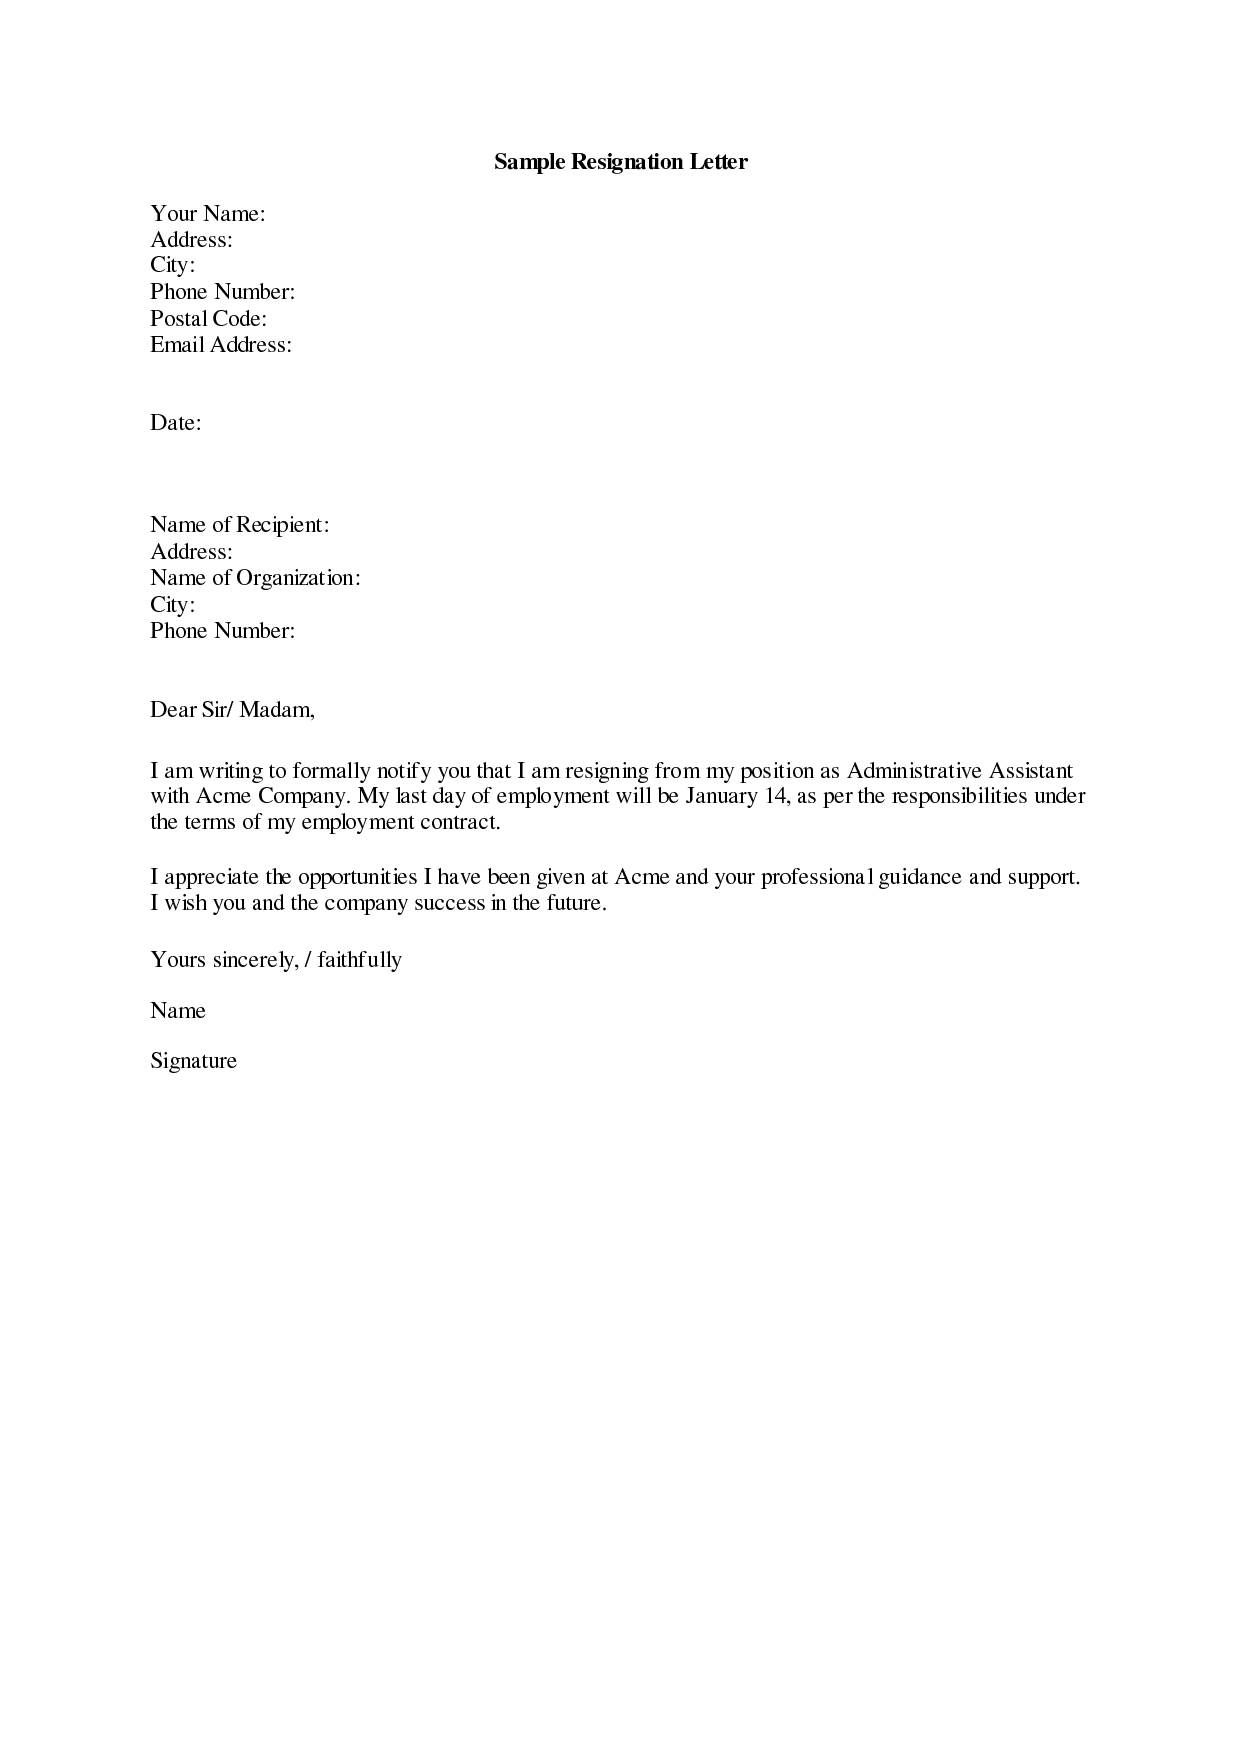 professional-Letter-of-Resignation-sample Template Cover Letter Internal Position Download Administrative Istant Pdf Printable Nwroit on